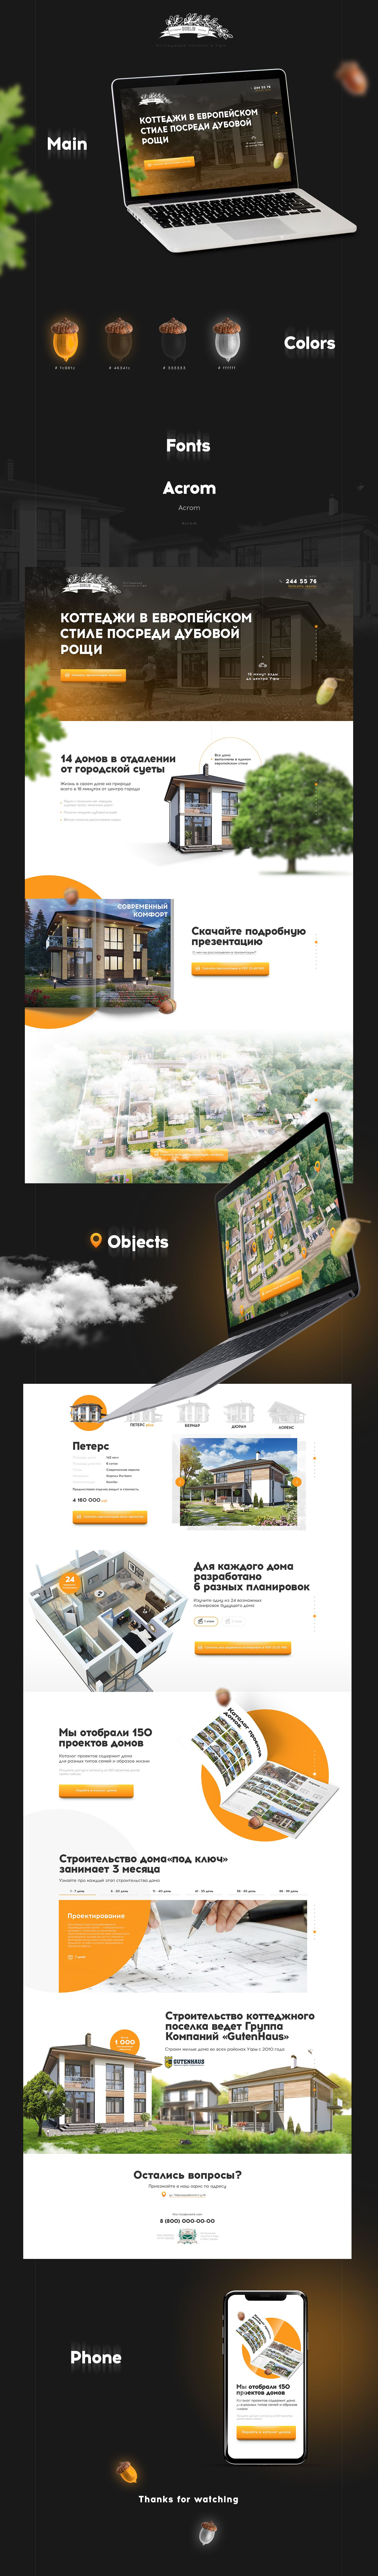 One Page For Village Dublin Web Design Web Design Inspiration Creative Webpage Design